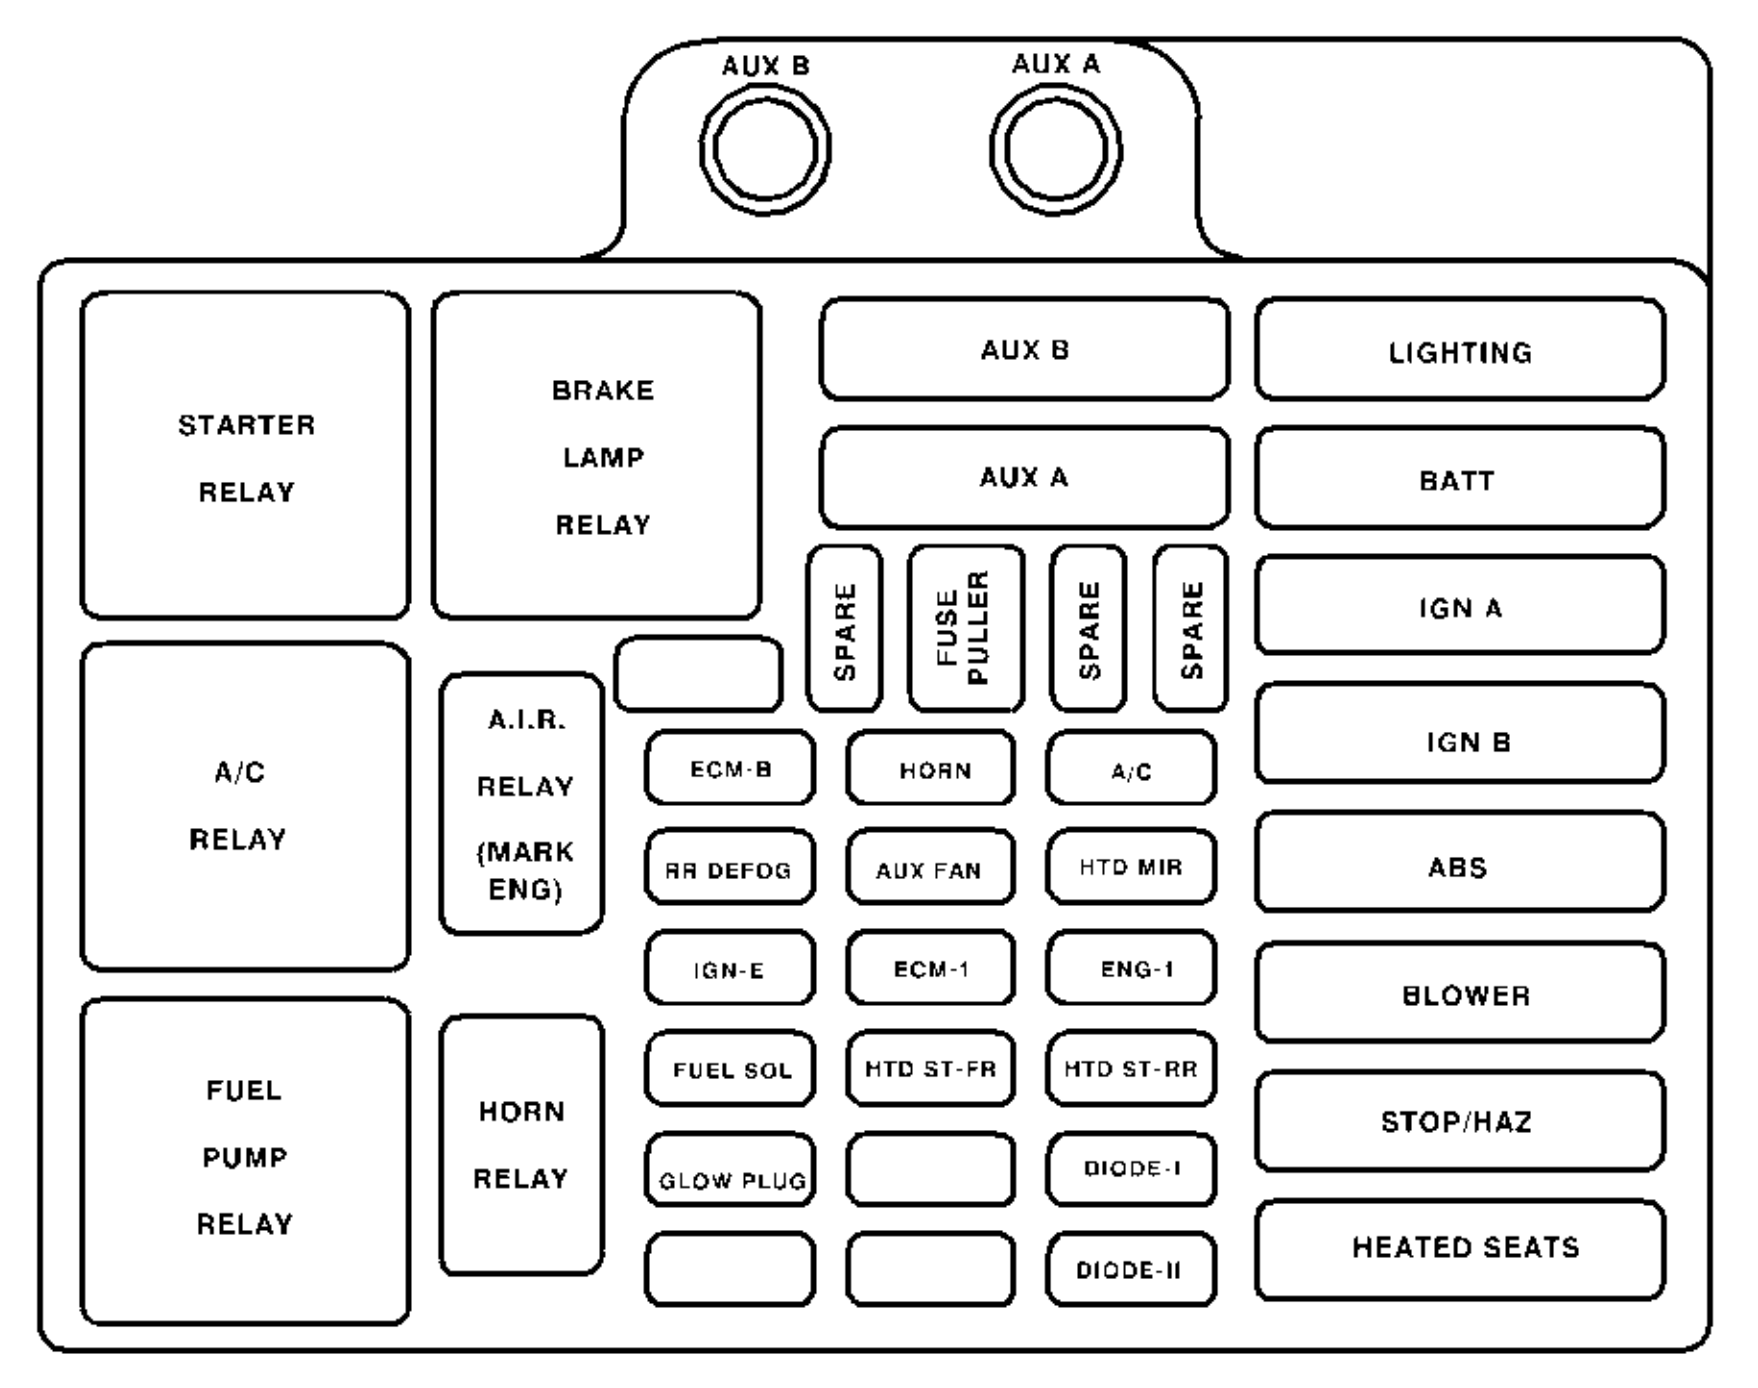 hight resolution of 2003 chevy astro van fuse box diagram wiring diagram for you 2003 chevy astro van fuse box diagram